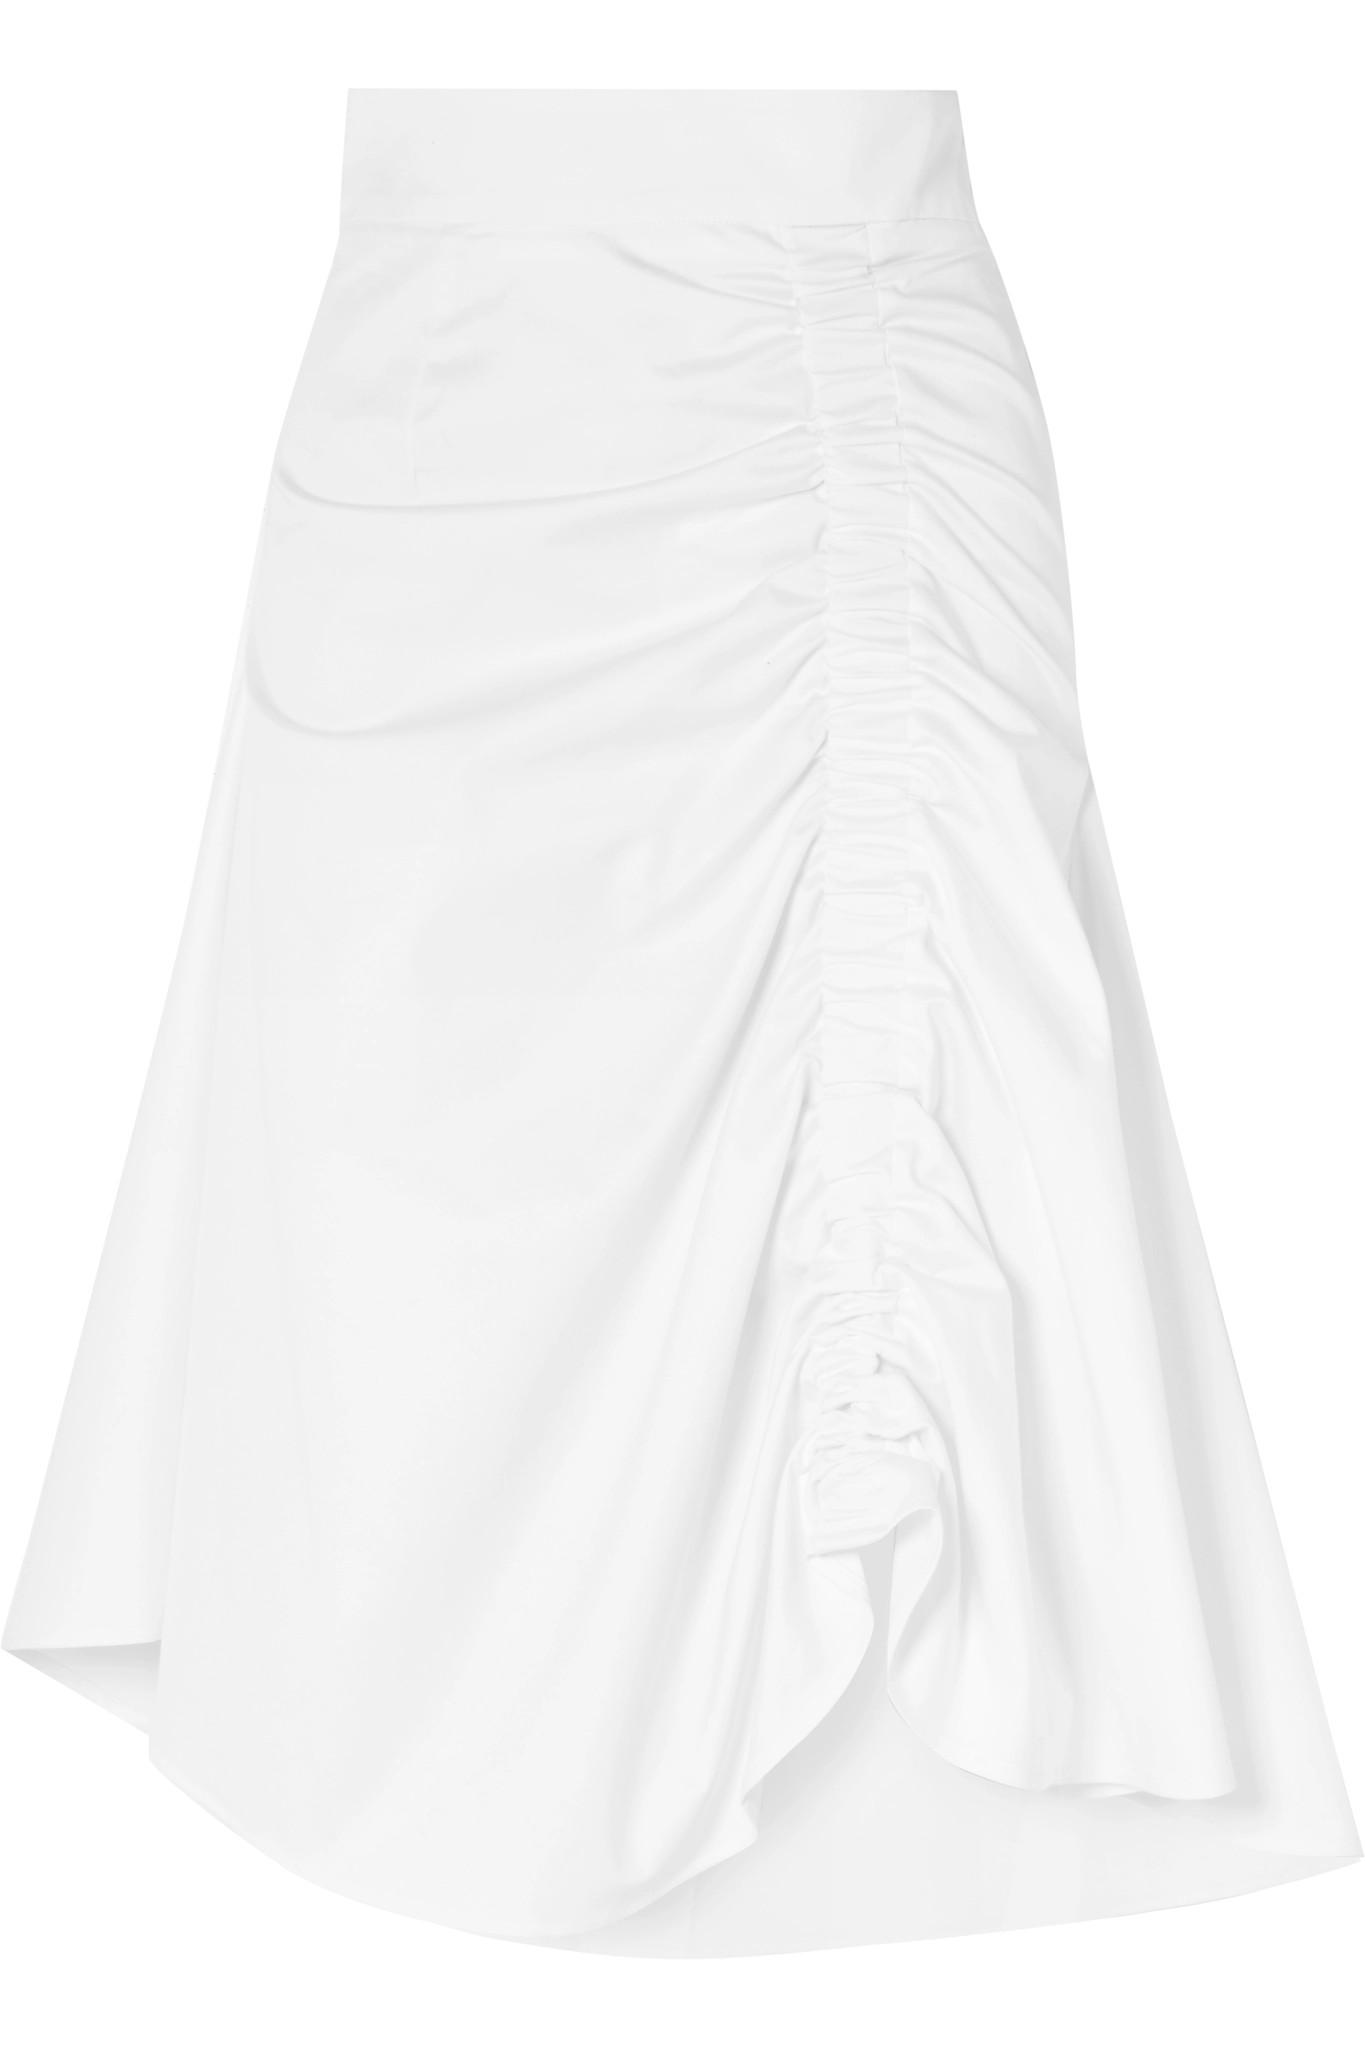 Ruched Cotton-blend Midi Skirt - White Sid Neigum Best Choice hNtOBD